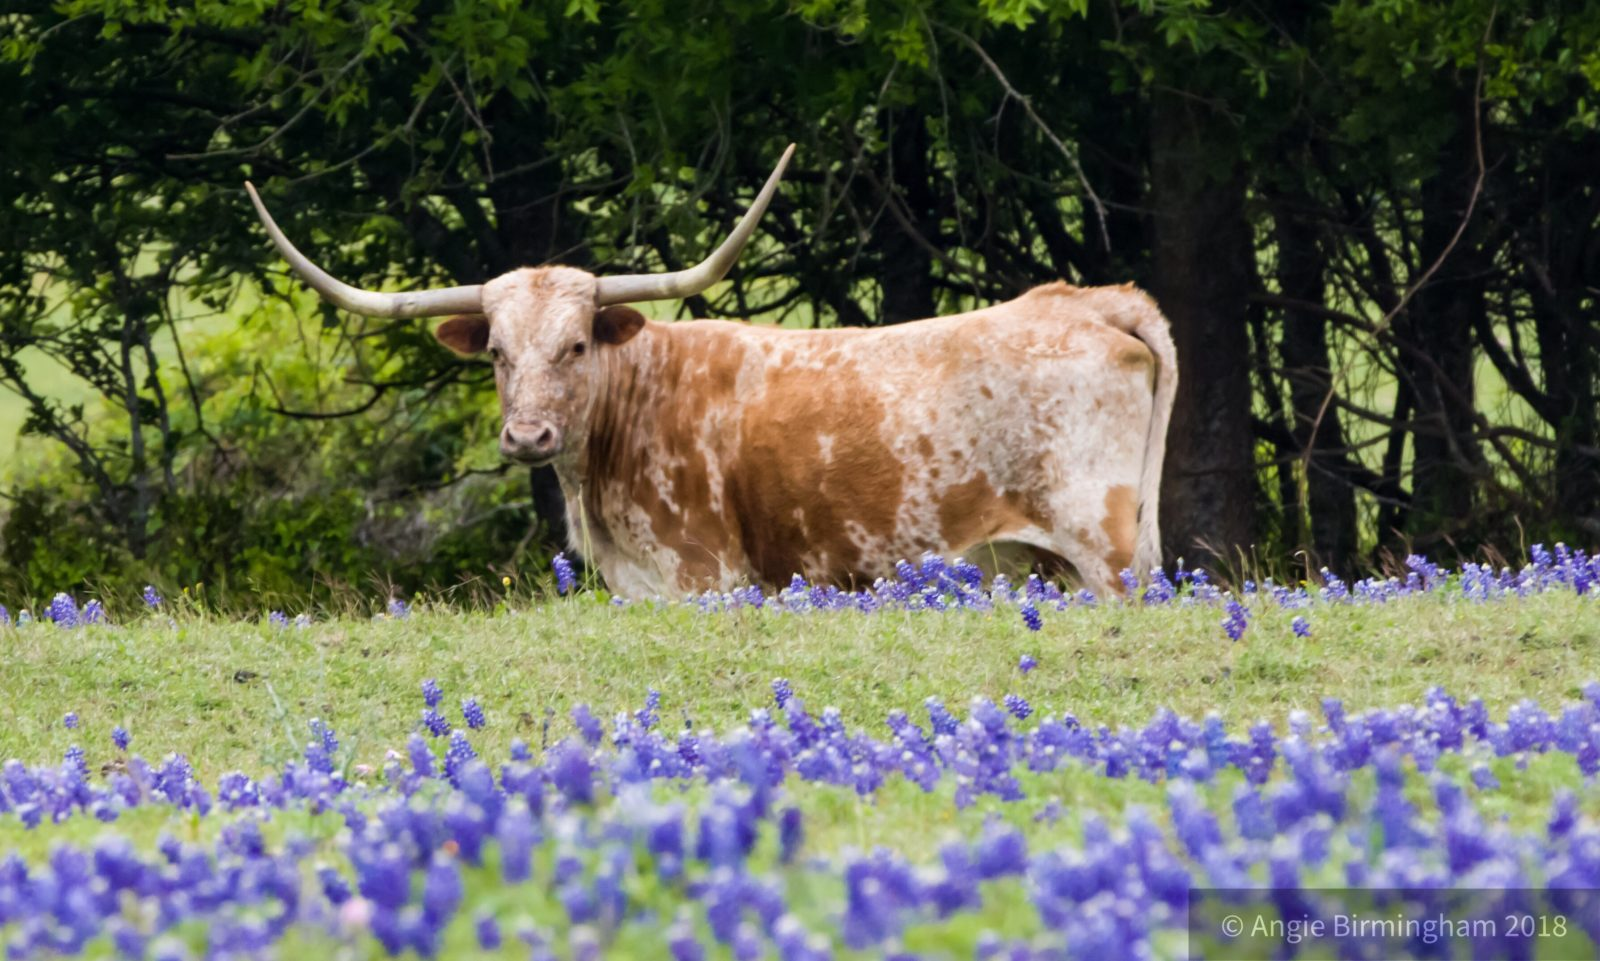 Longhorns and bluebonnets